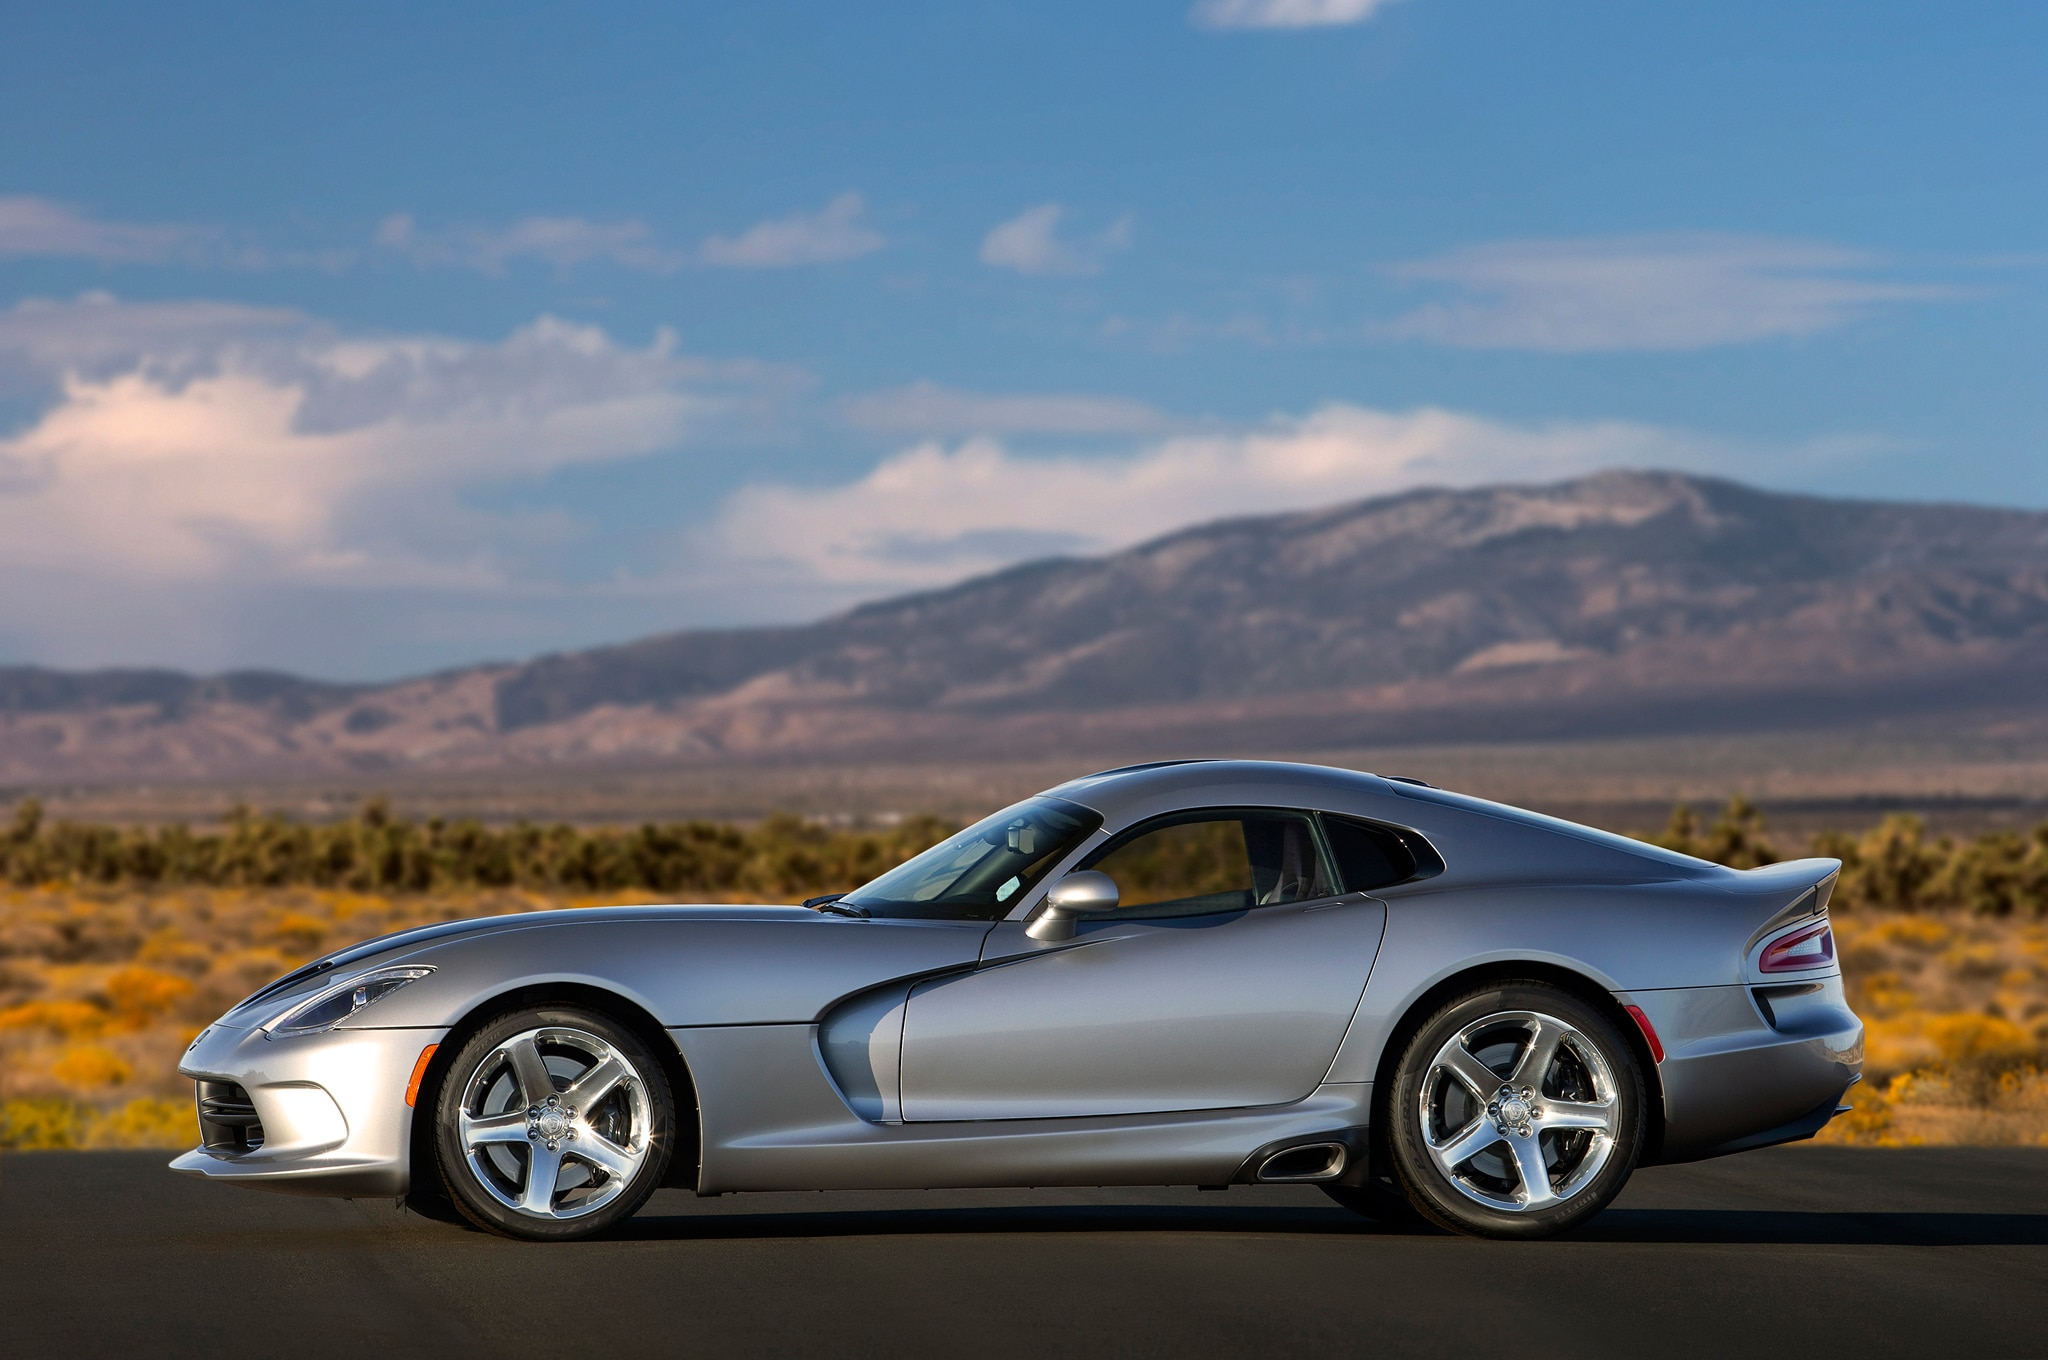 The Top 10 Most Interesting Vehicles at the Walter P. Chrysler Museum